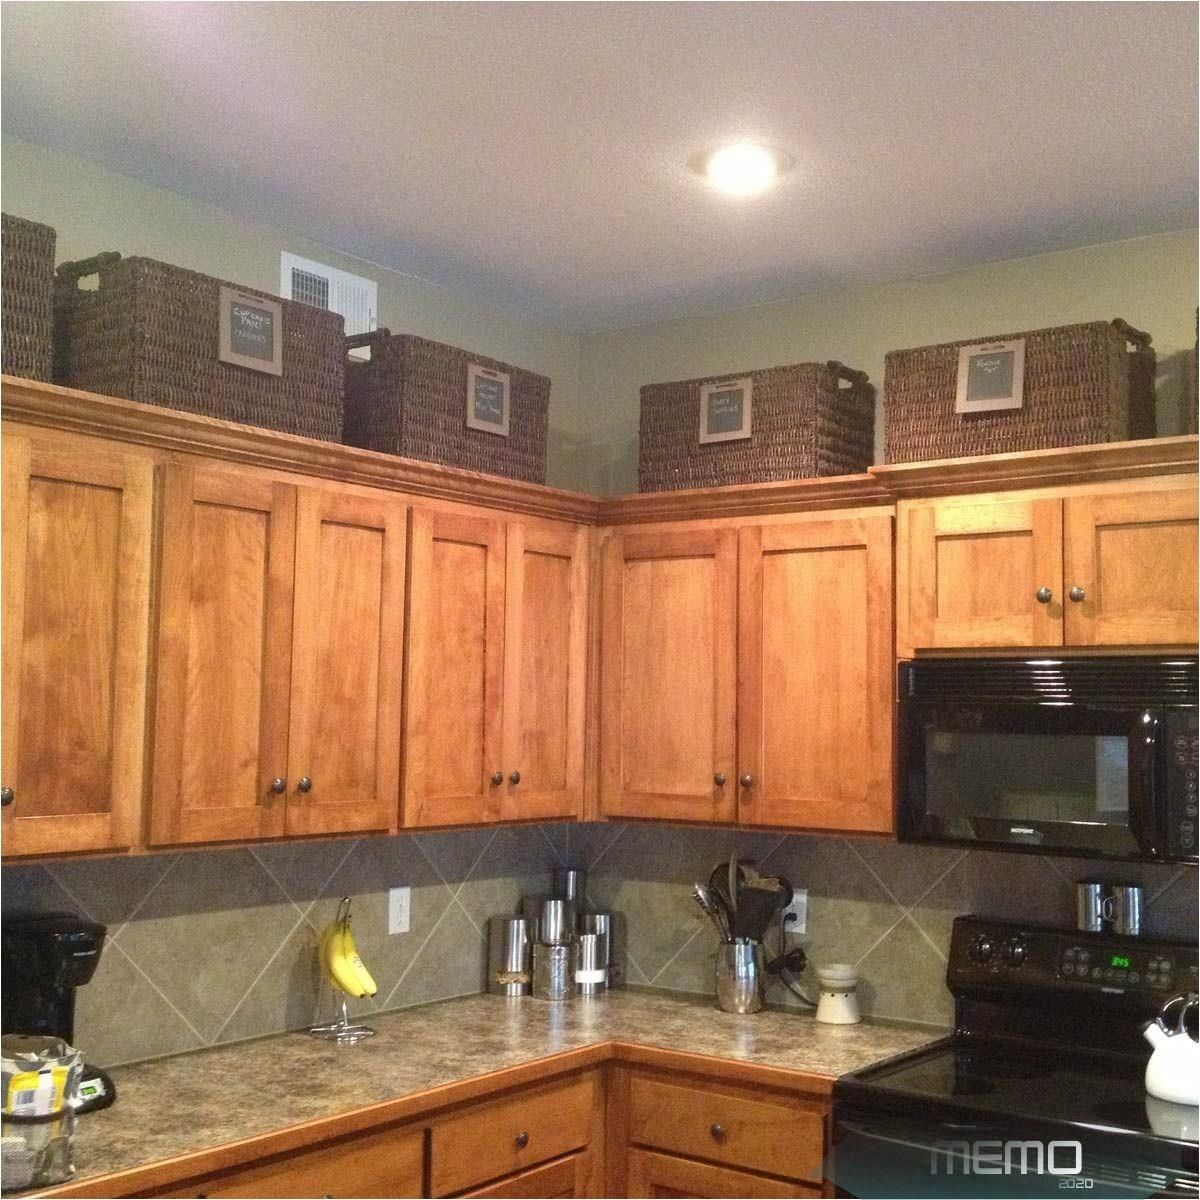 May 19 2018 If You Re Short On Space Or Just Want To Add Some Extra Storage There Are In 2020 Above Kitchen Cabinets Kitchen Cabinet Storage Budget Kitchen Remodel